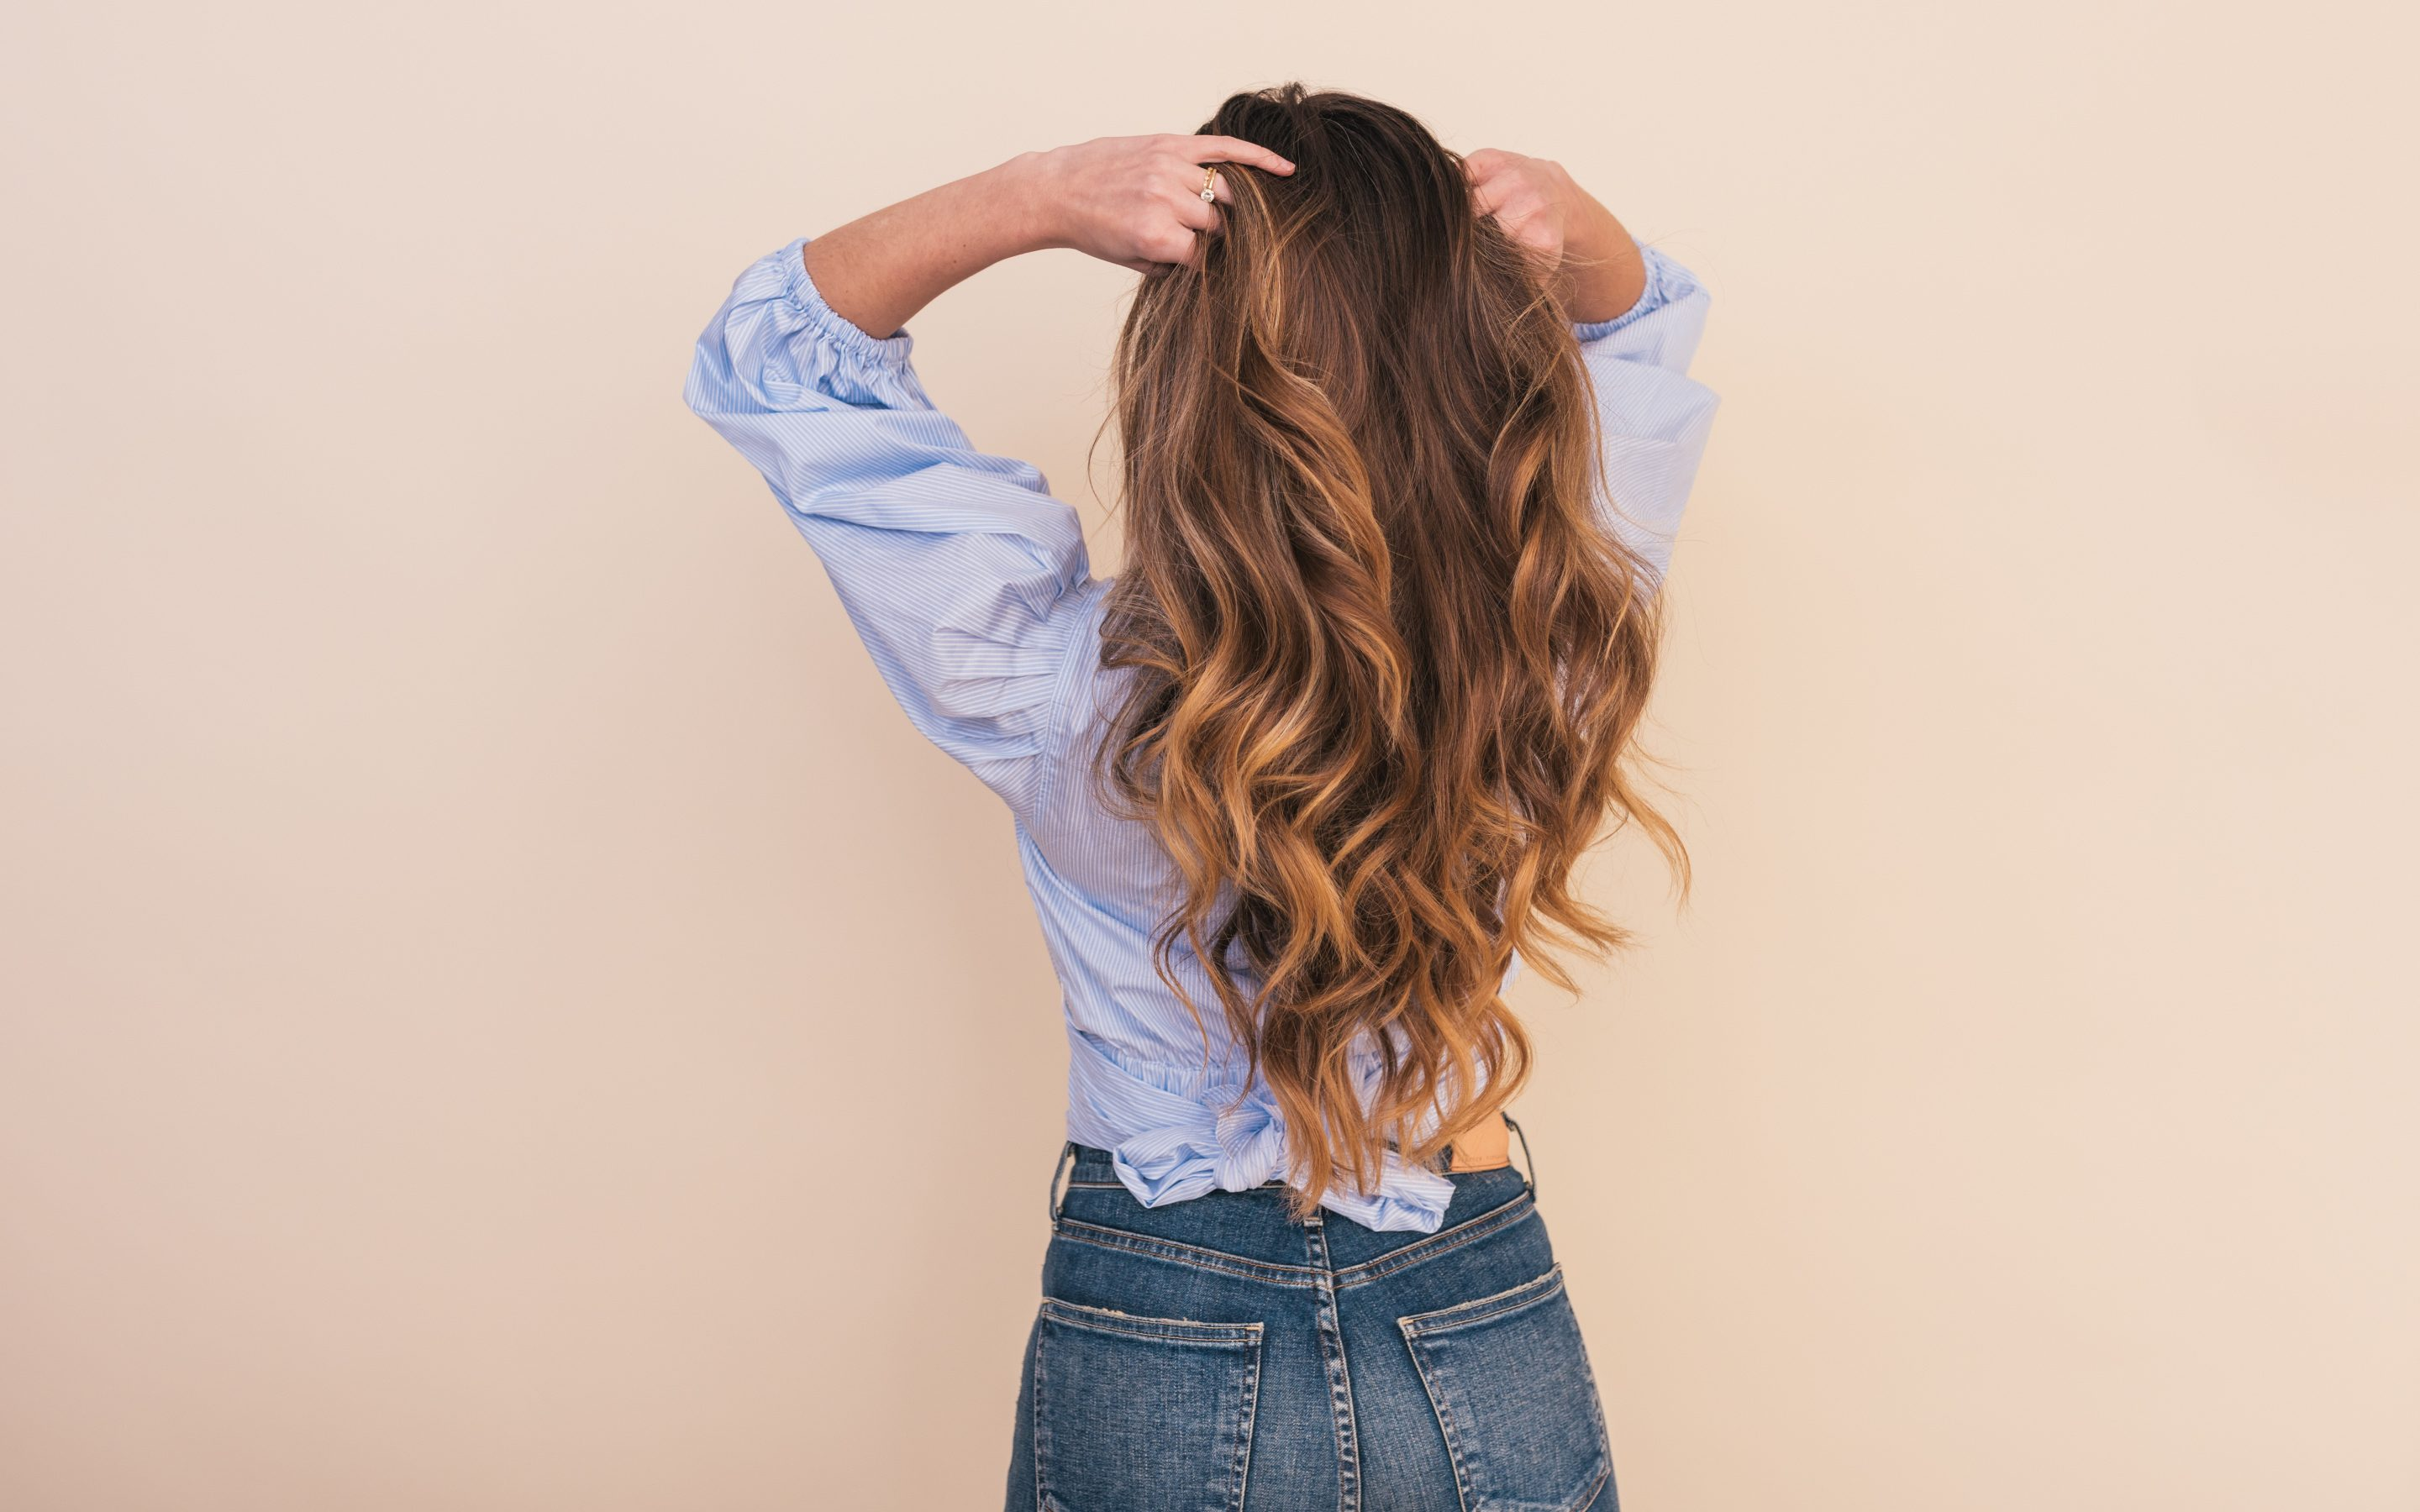 Tips and Tricks for Oily Hair